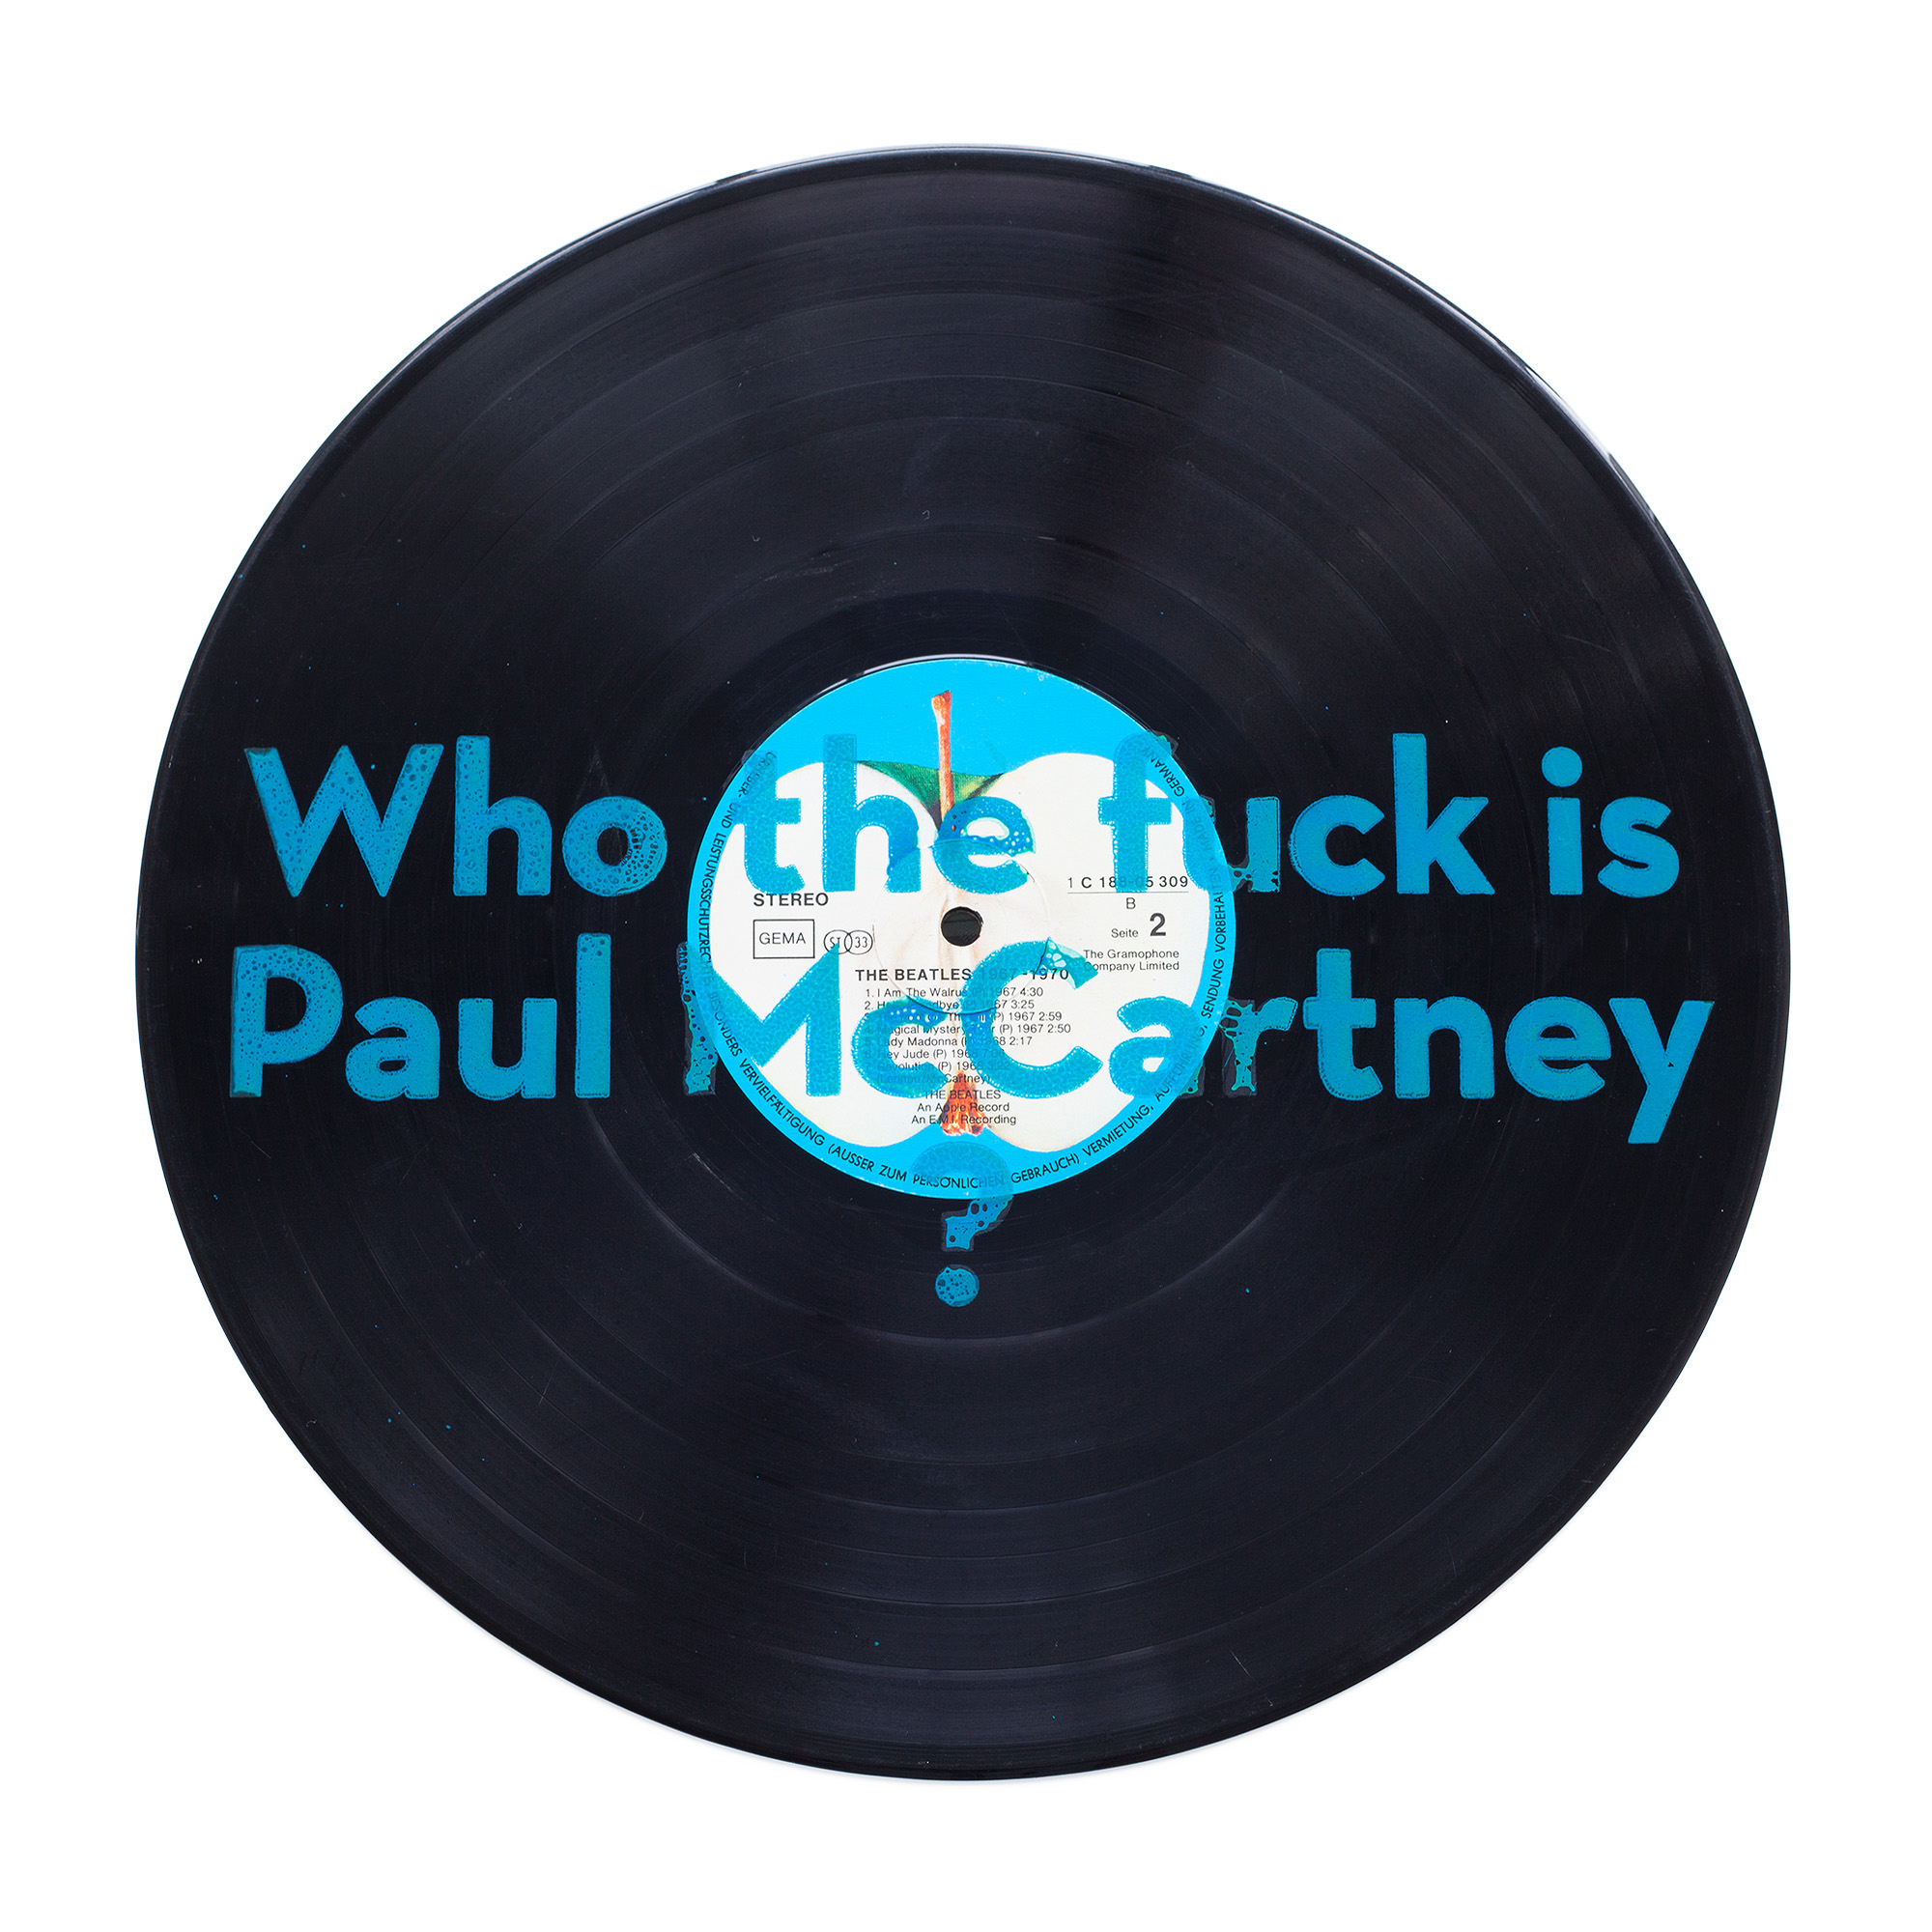 Who the fuck is Paul McCartney